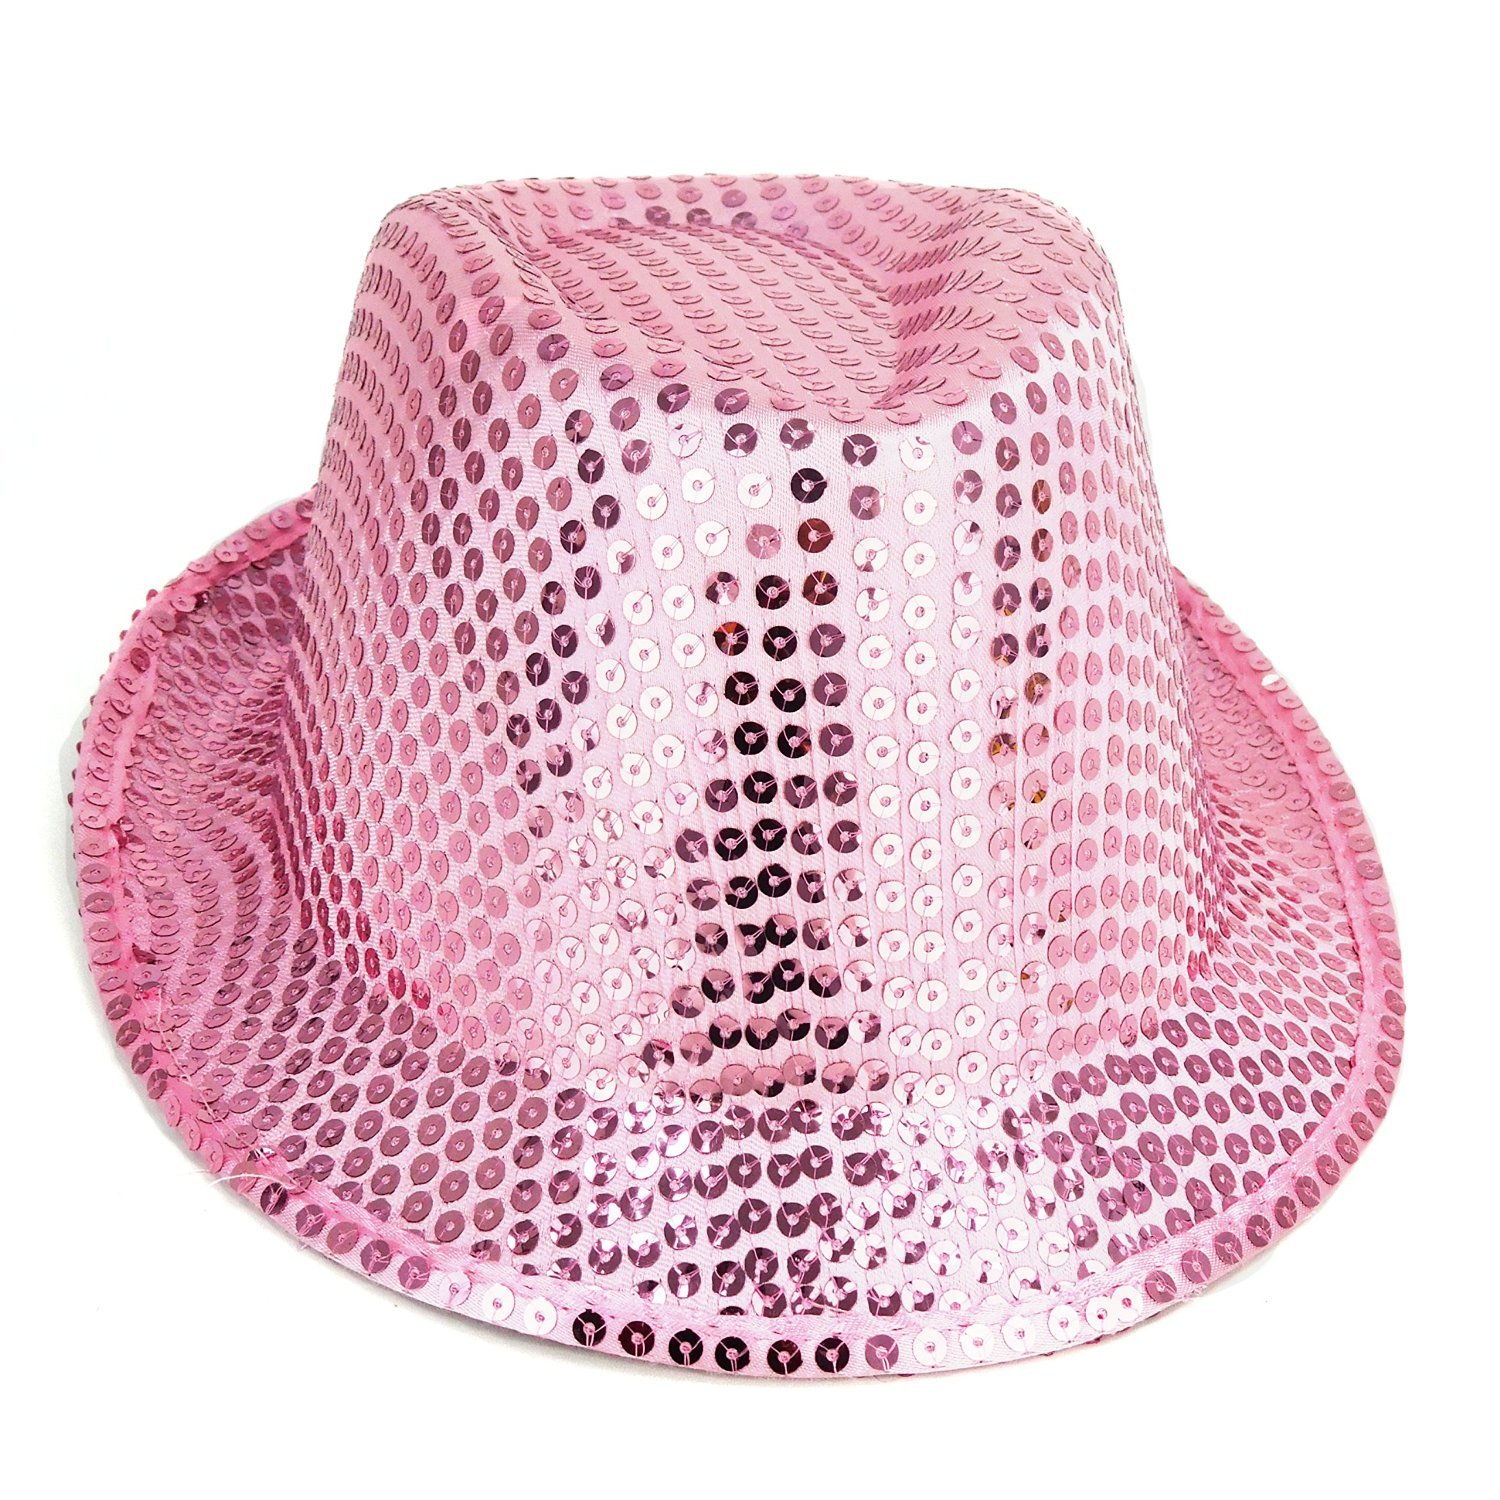 Pack Of 24 - 27cm x 14cm Pink Sequin Trilby Hats - Fancy Dress - Stag / Hen Night Accessories